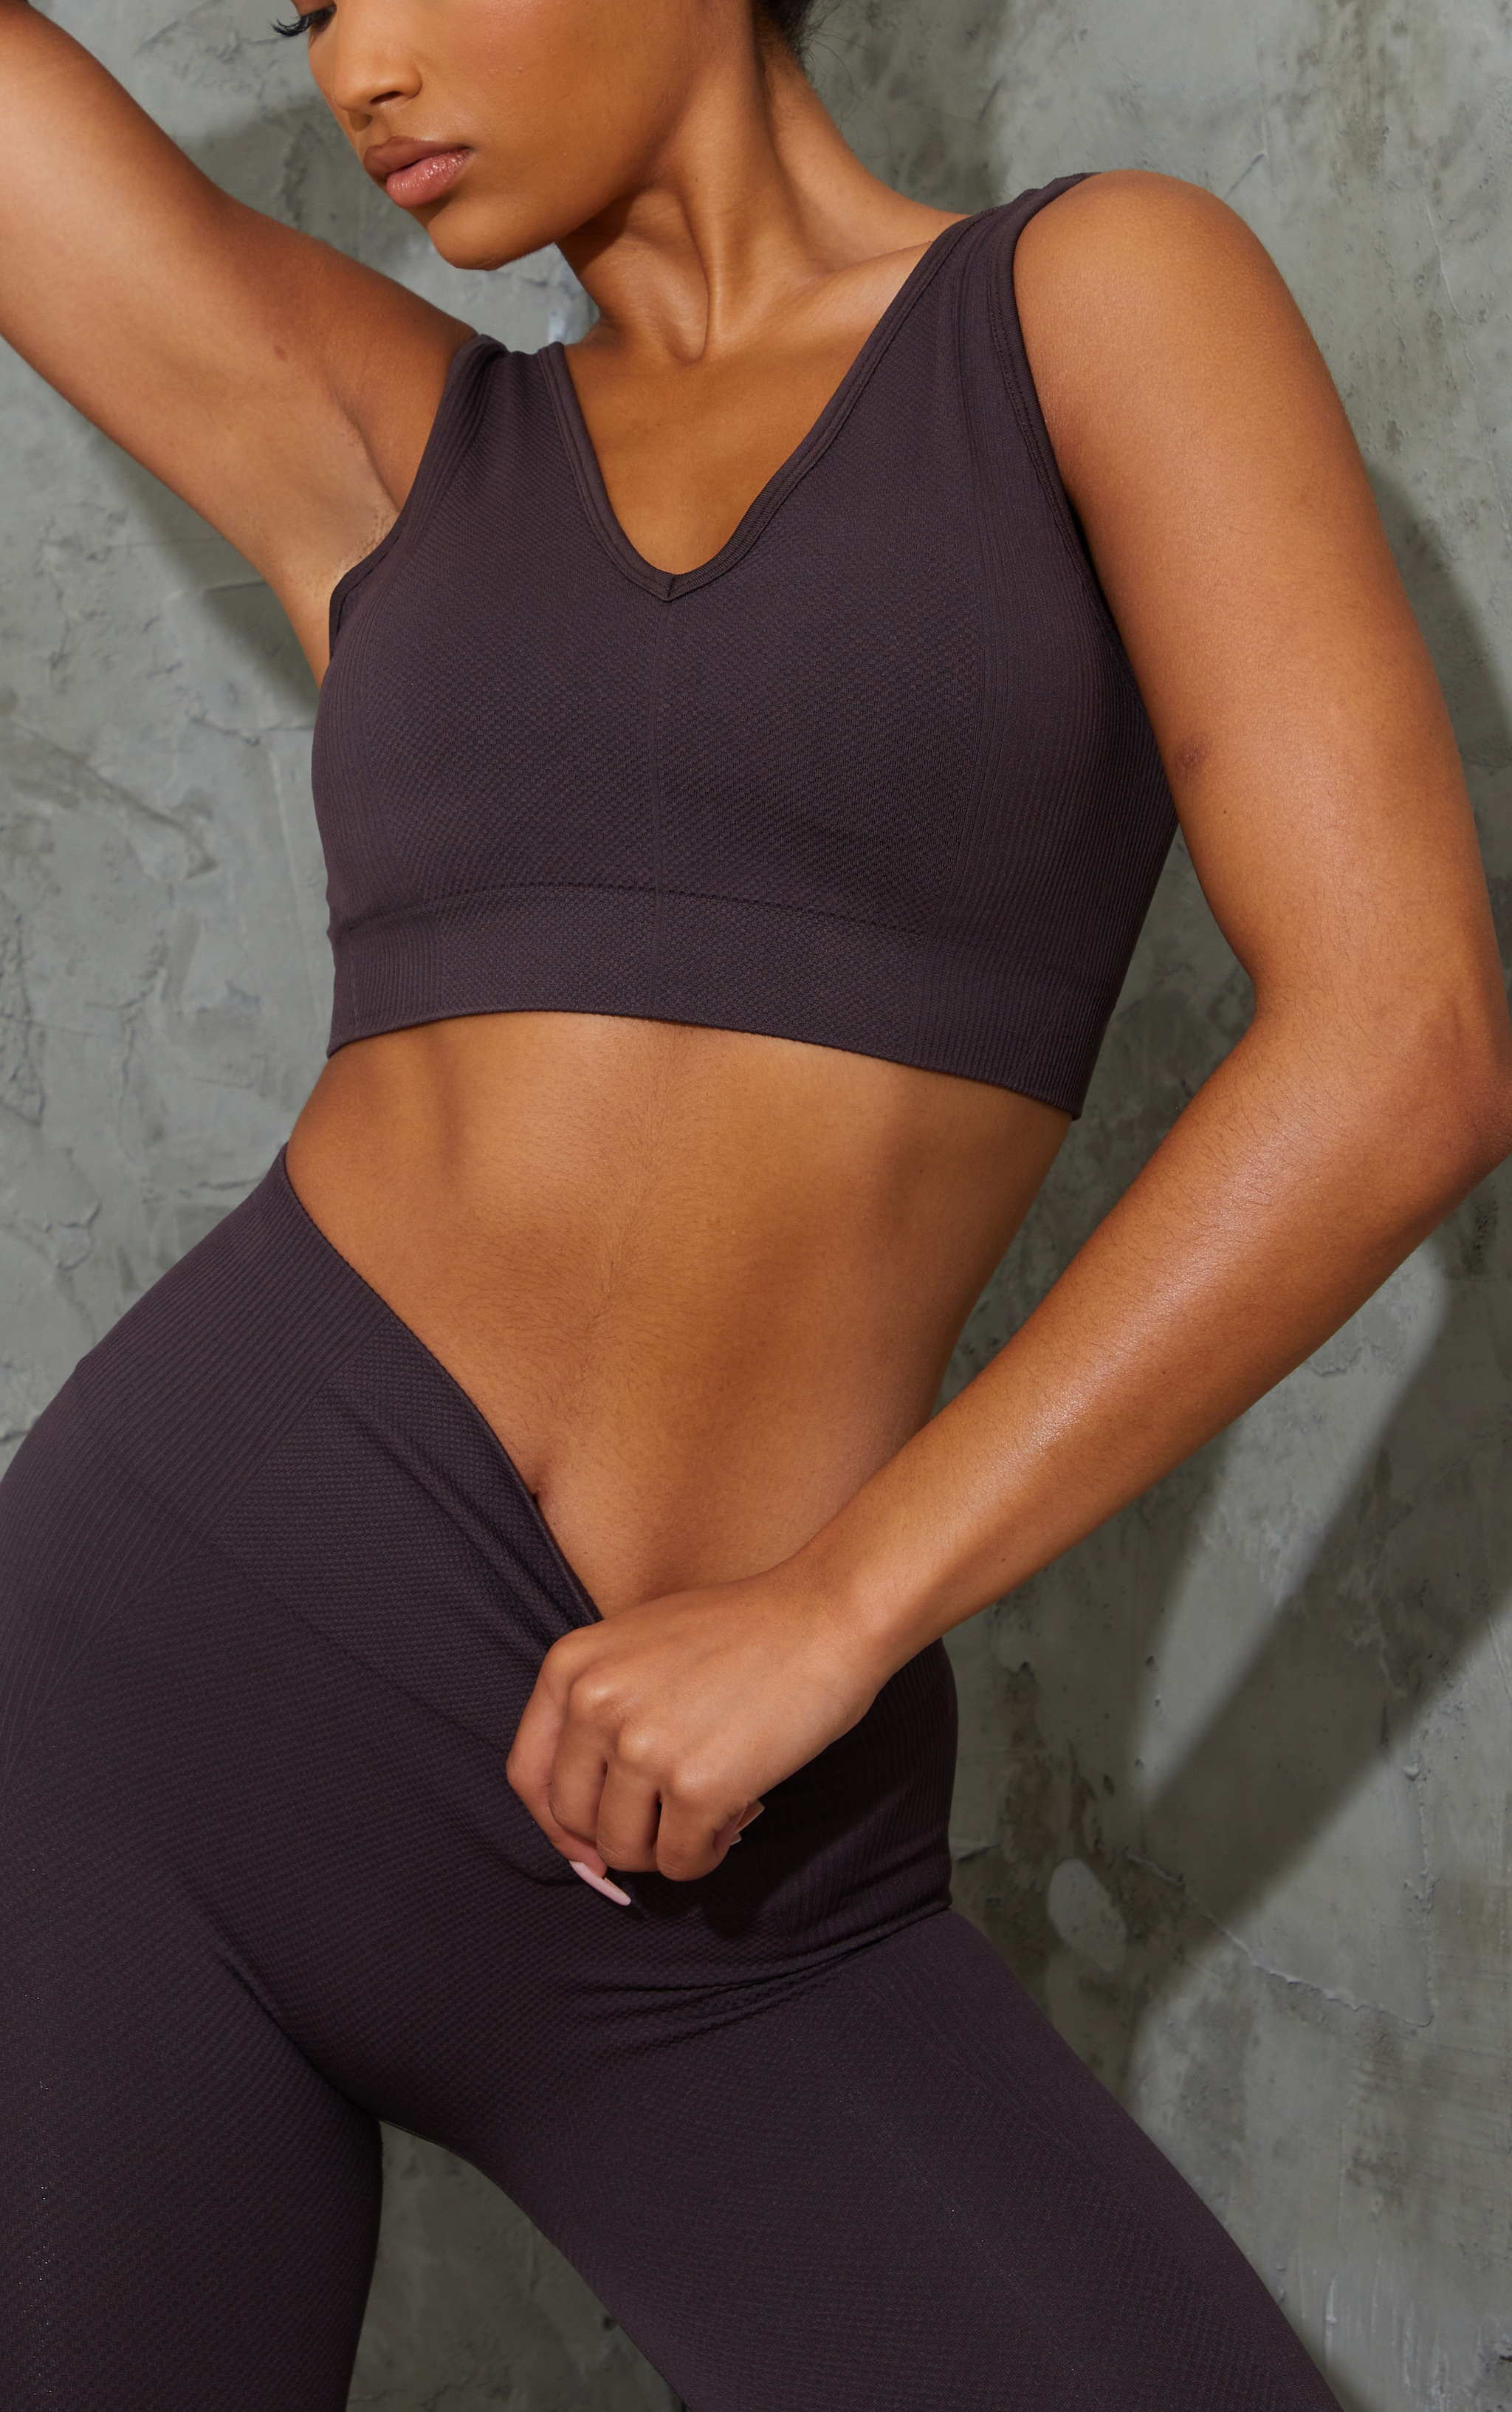 Chocolate V Neck Padded Textured Seamless Sports Bra 4